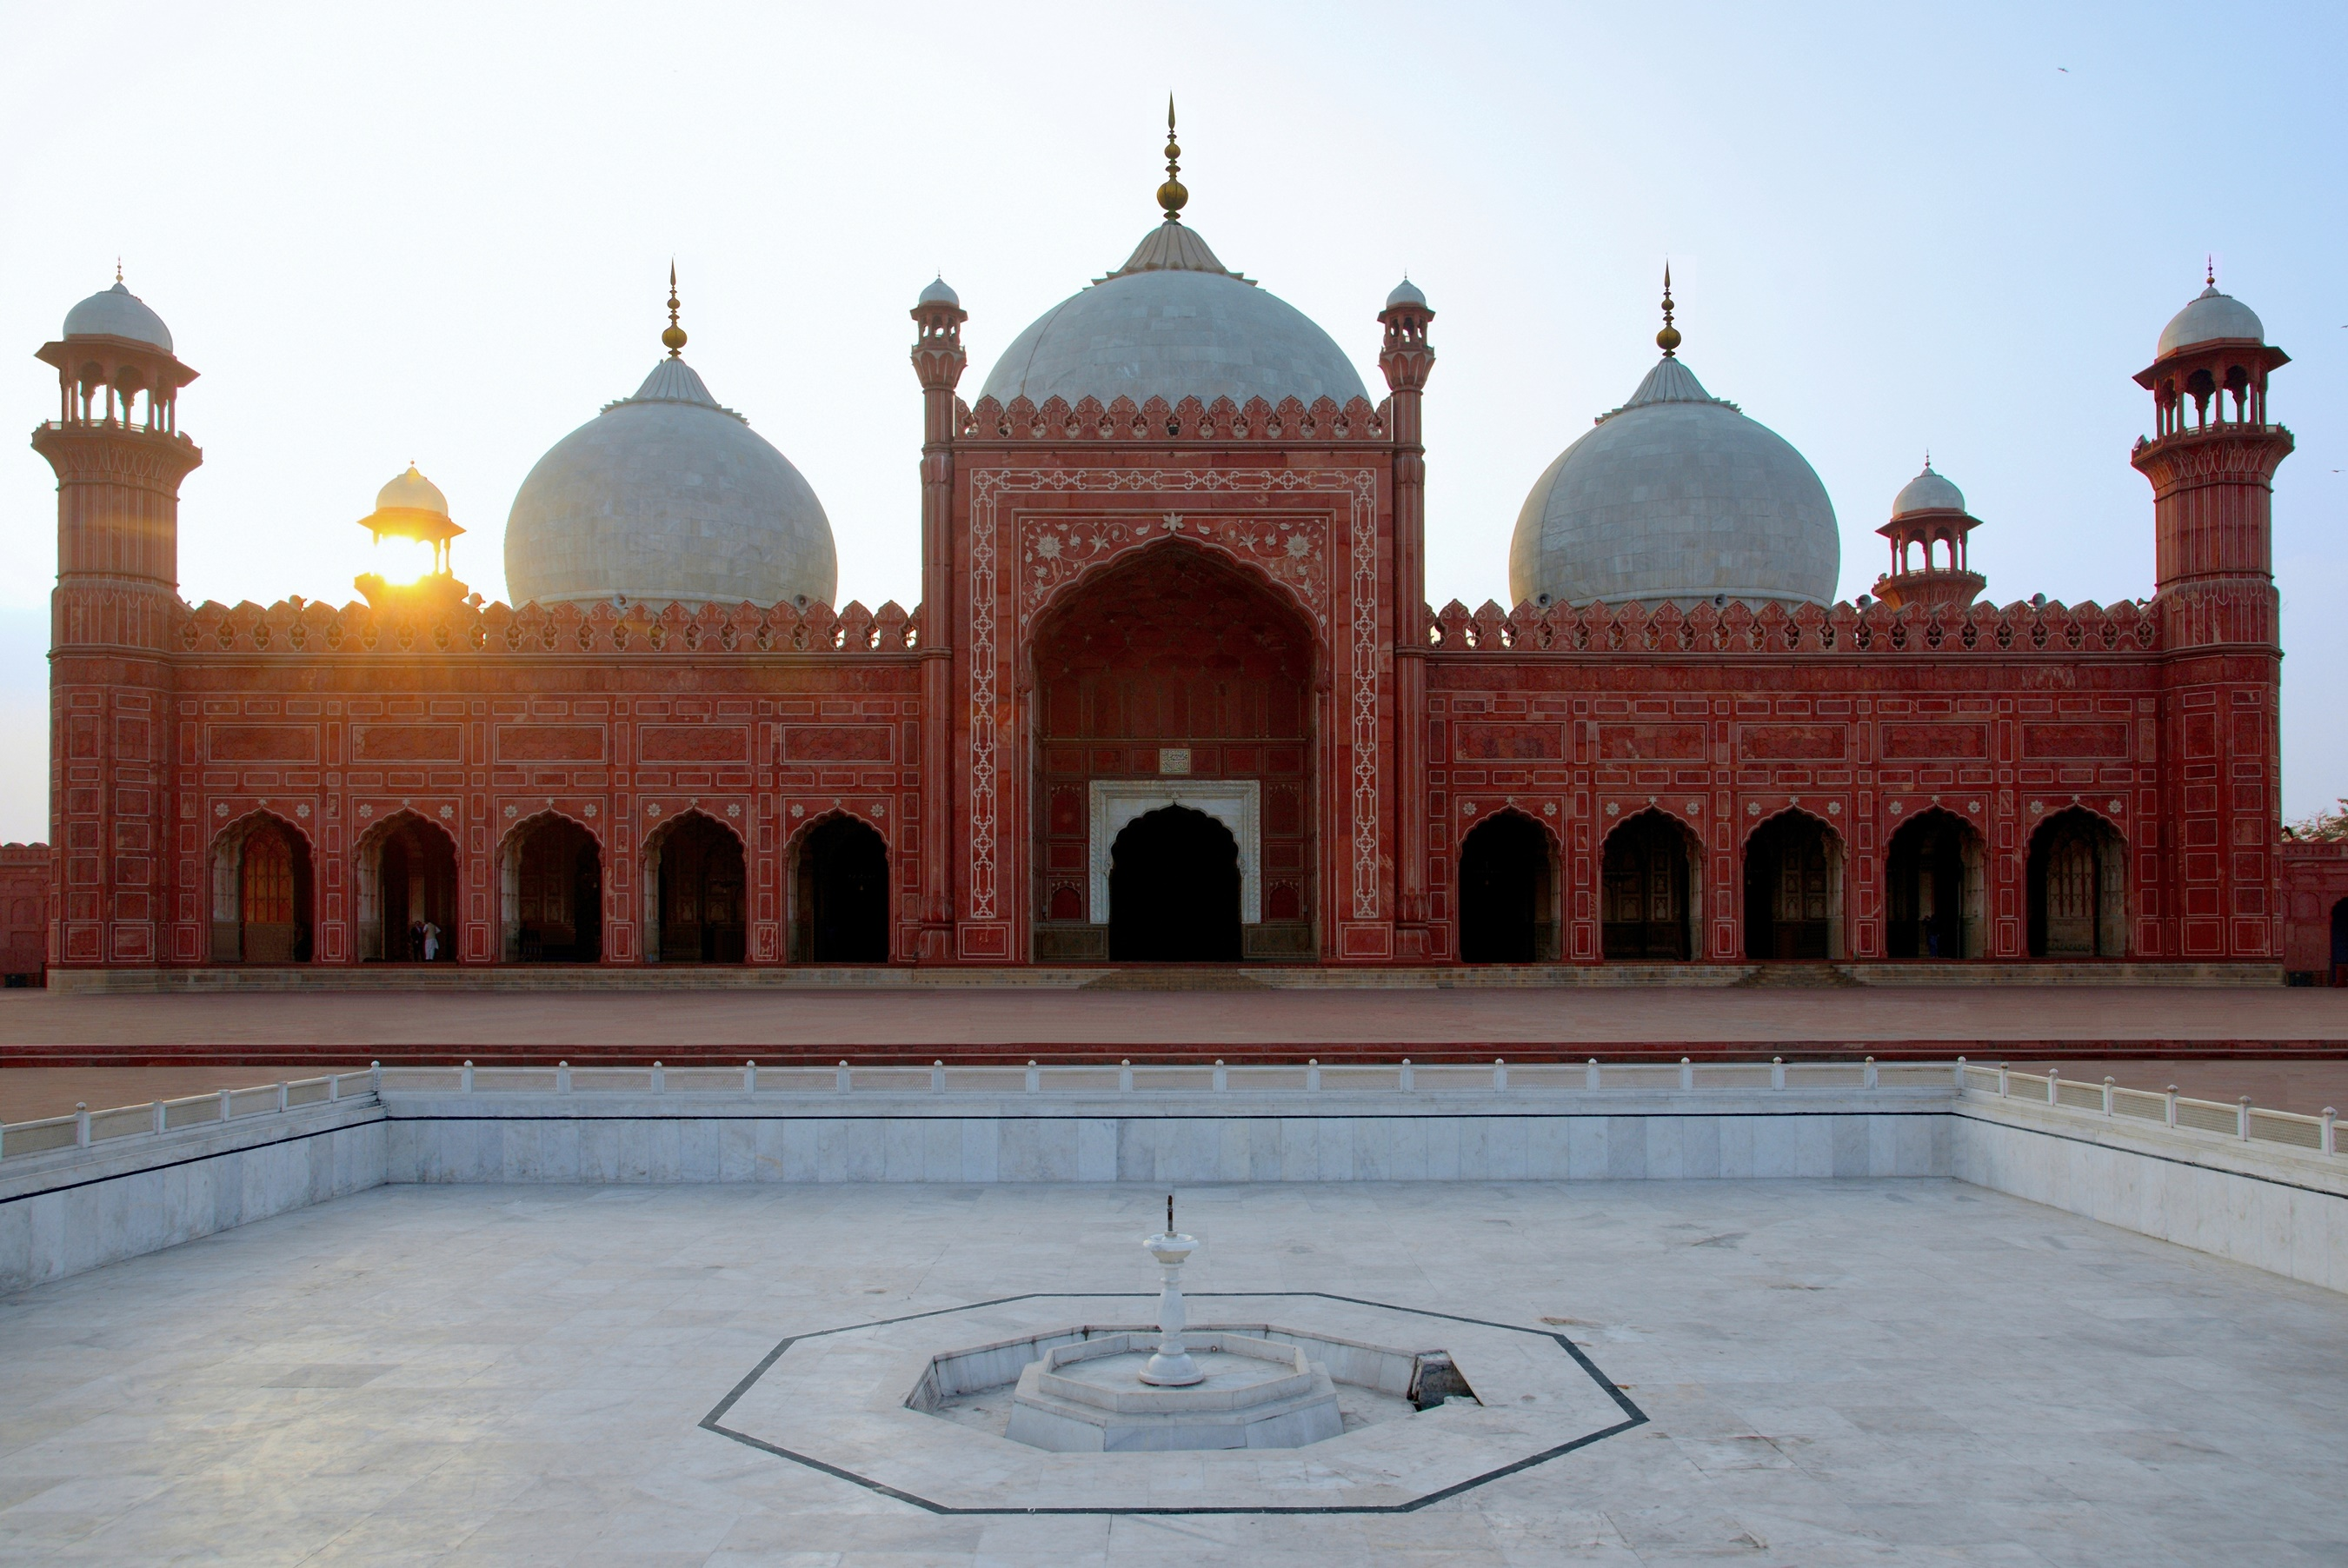 The most beautiful mosques to visit: Badshahi Mosque at sunset, Lahore, Pakistan